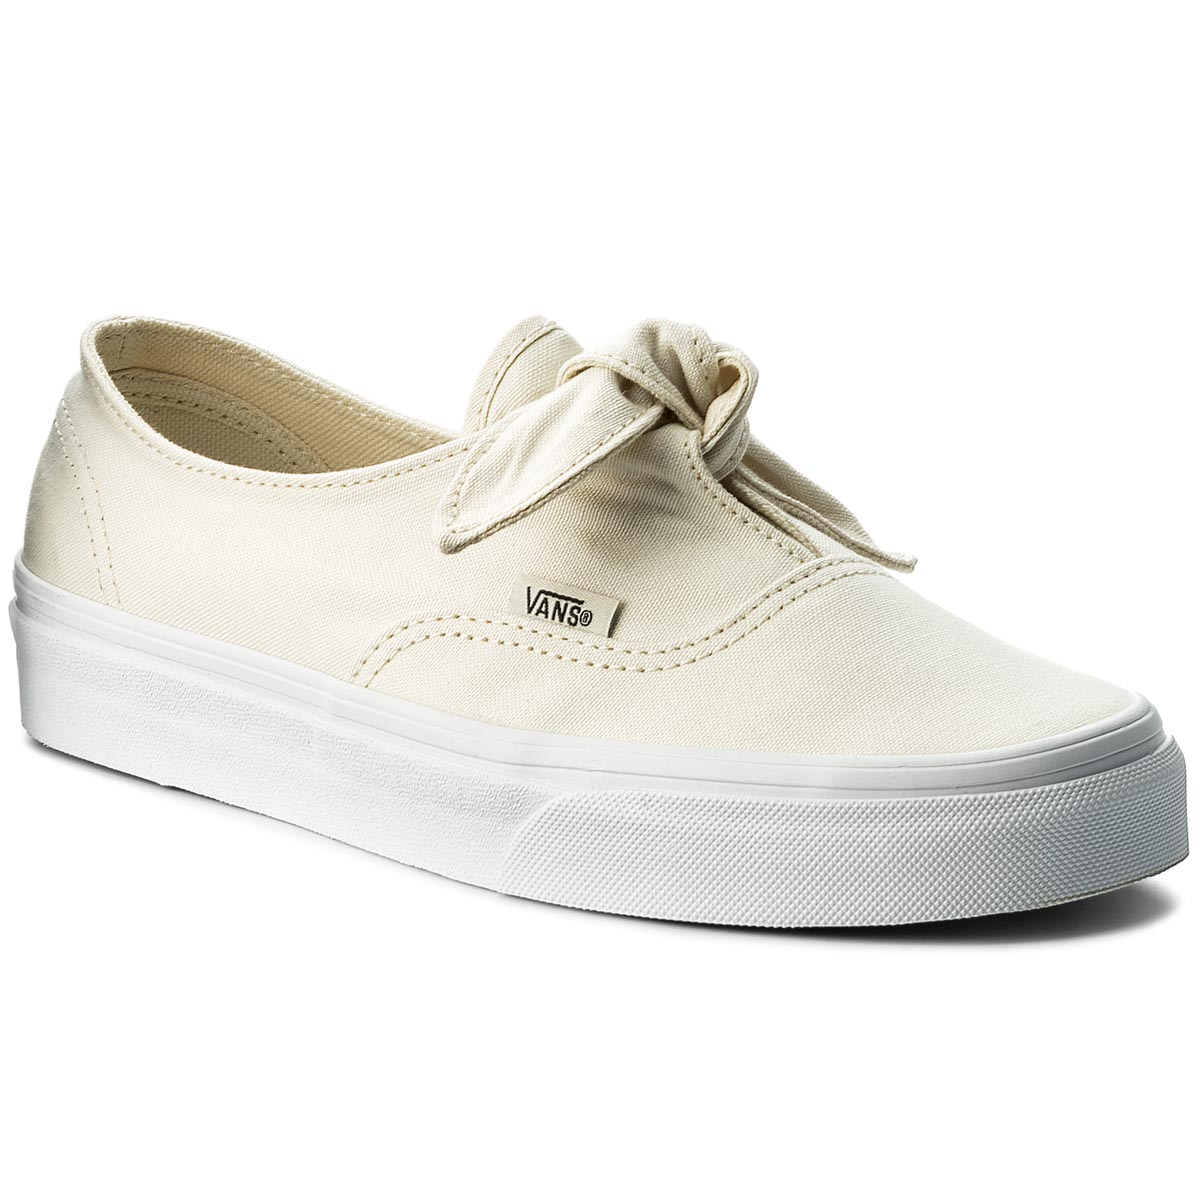 Teniși VANS - Authentic Knotted VN0A3MU2F8Z (Canvas) Marshmallow